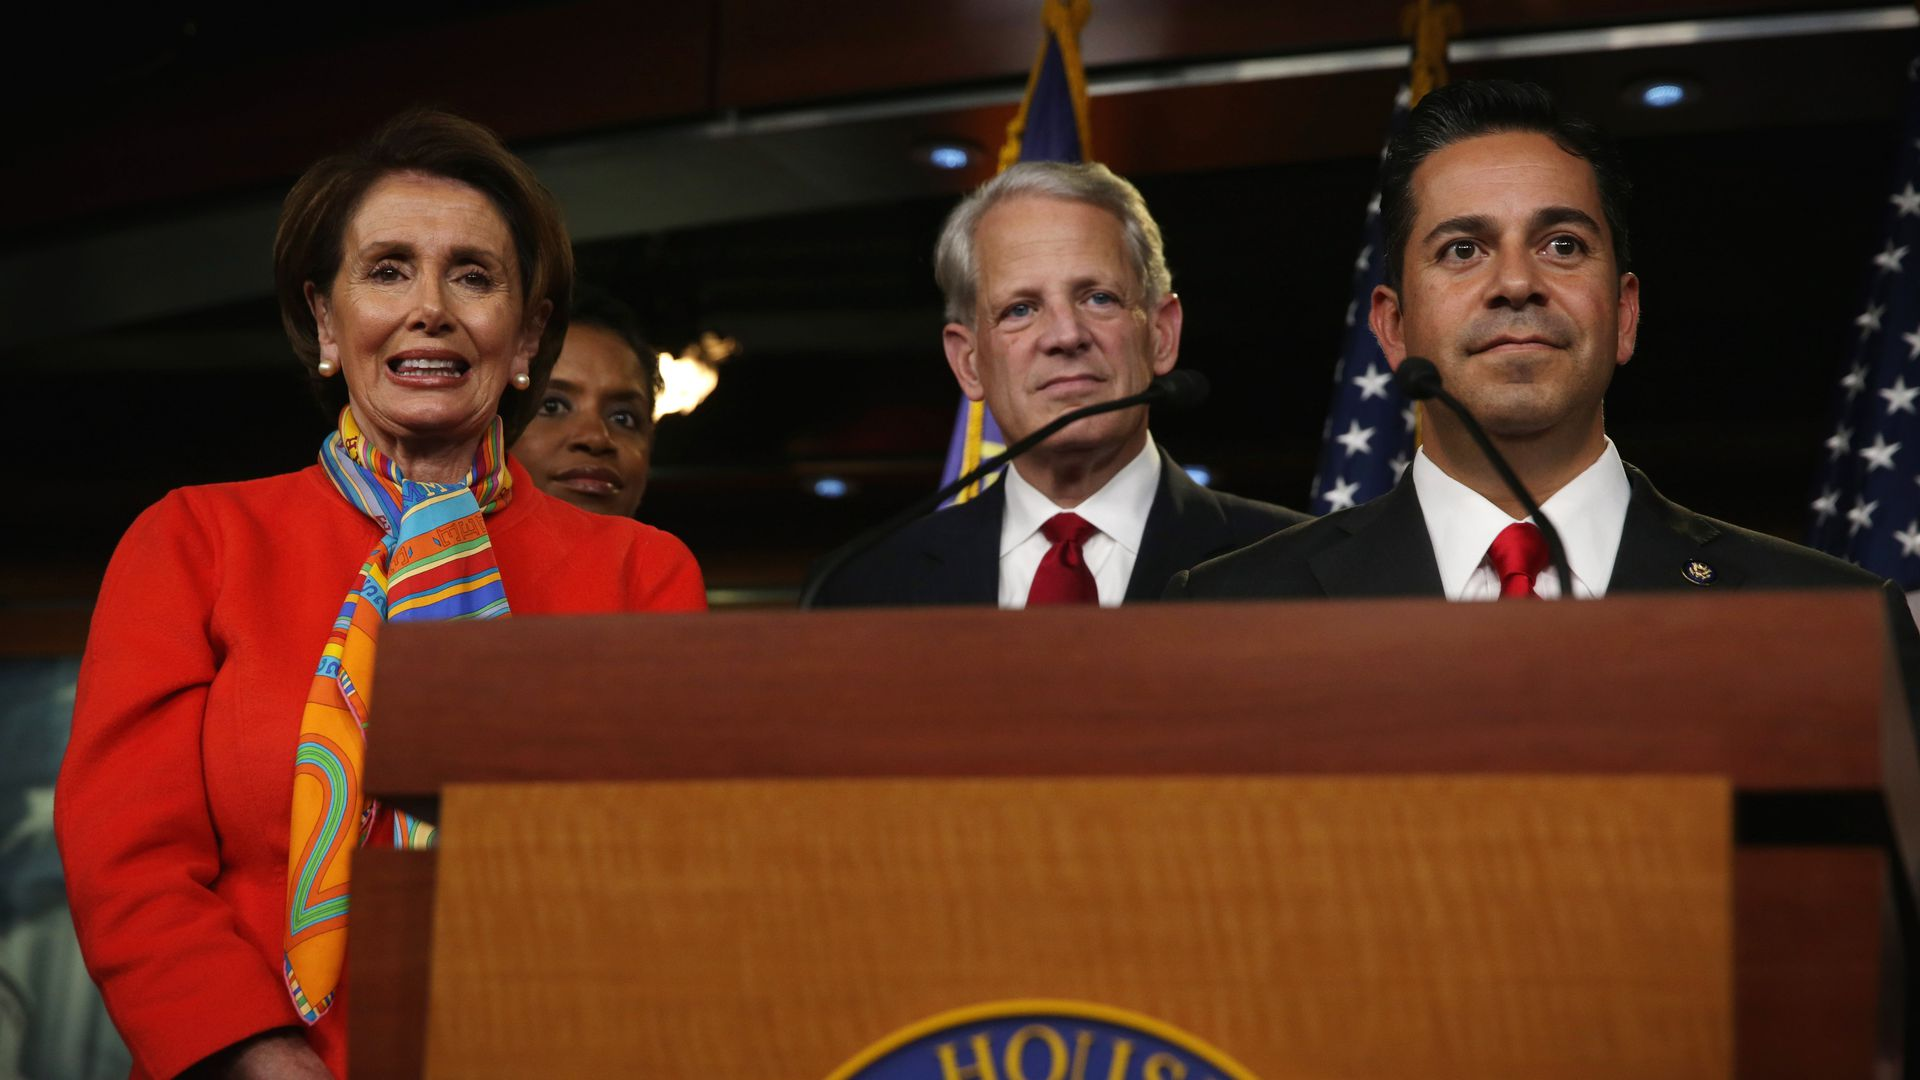 Speaker of the House Nancy Pelosi with Ben Ray Luján